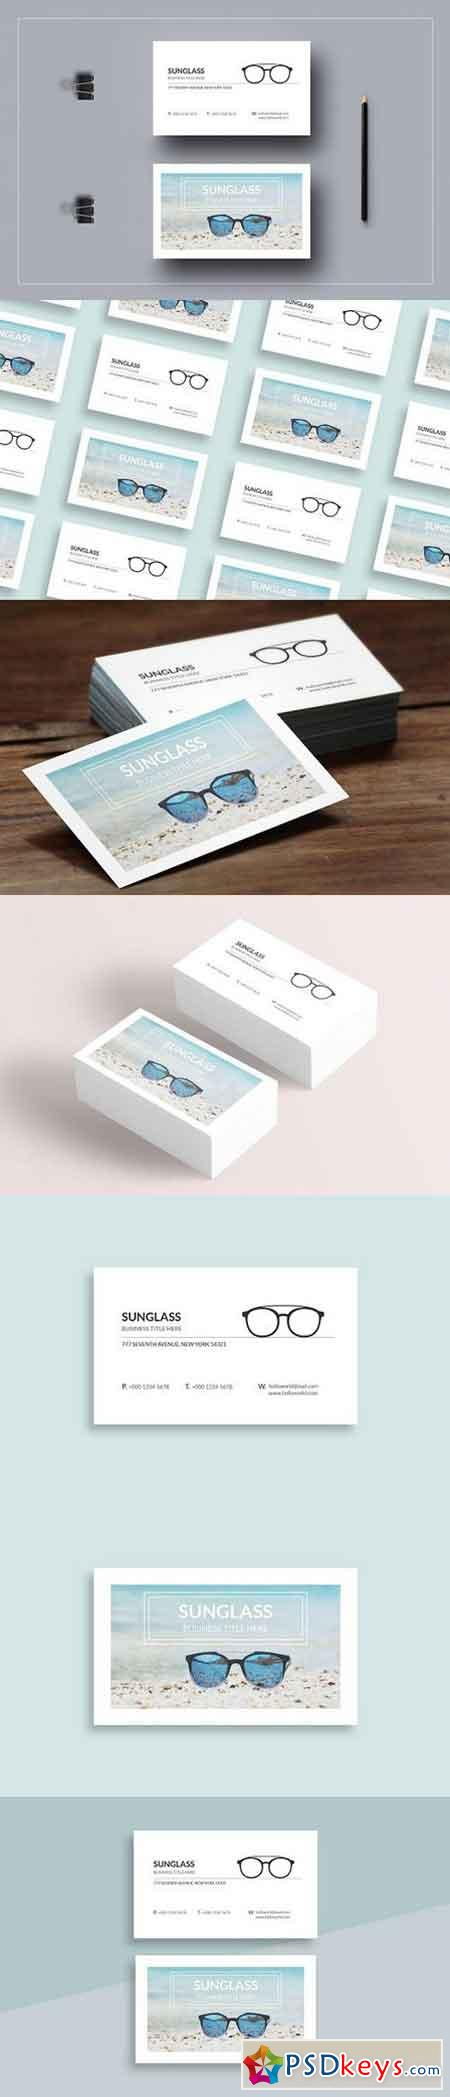 Sun Glass Business Card Template 1529432